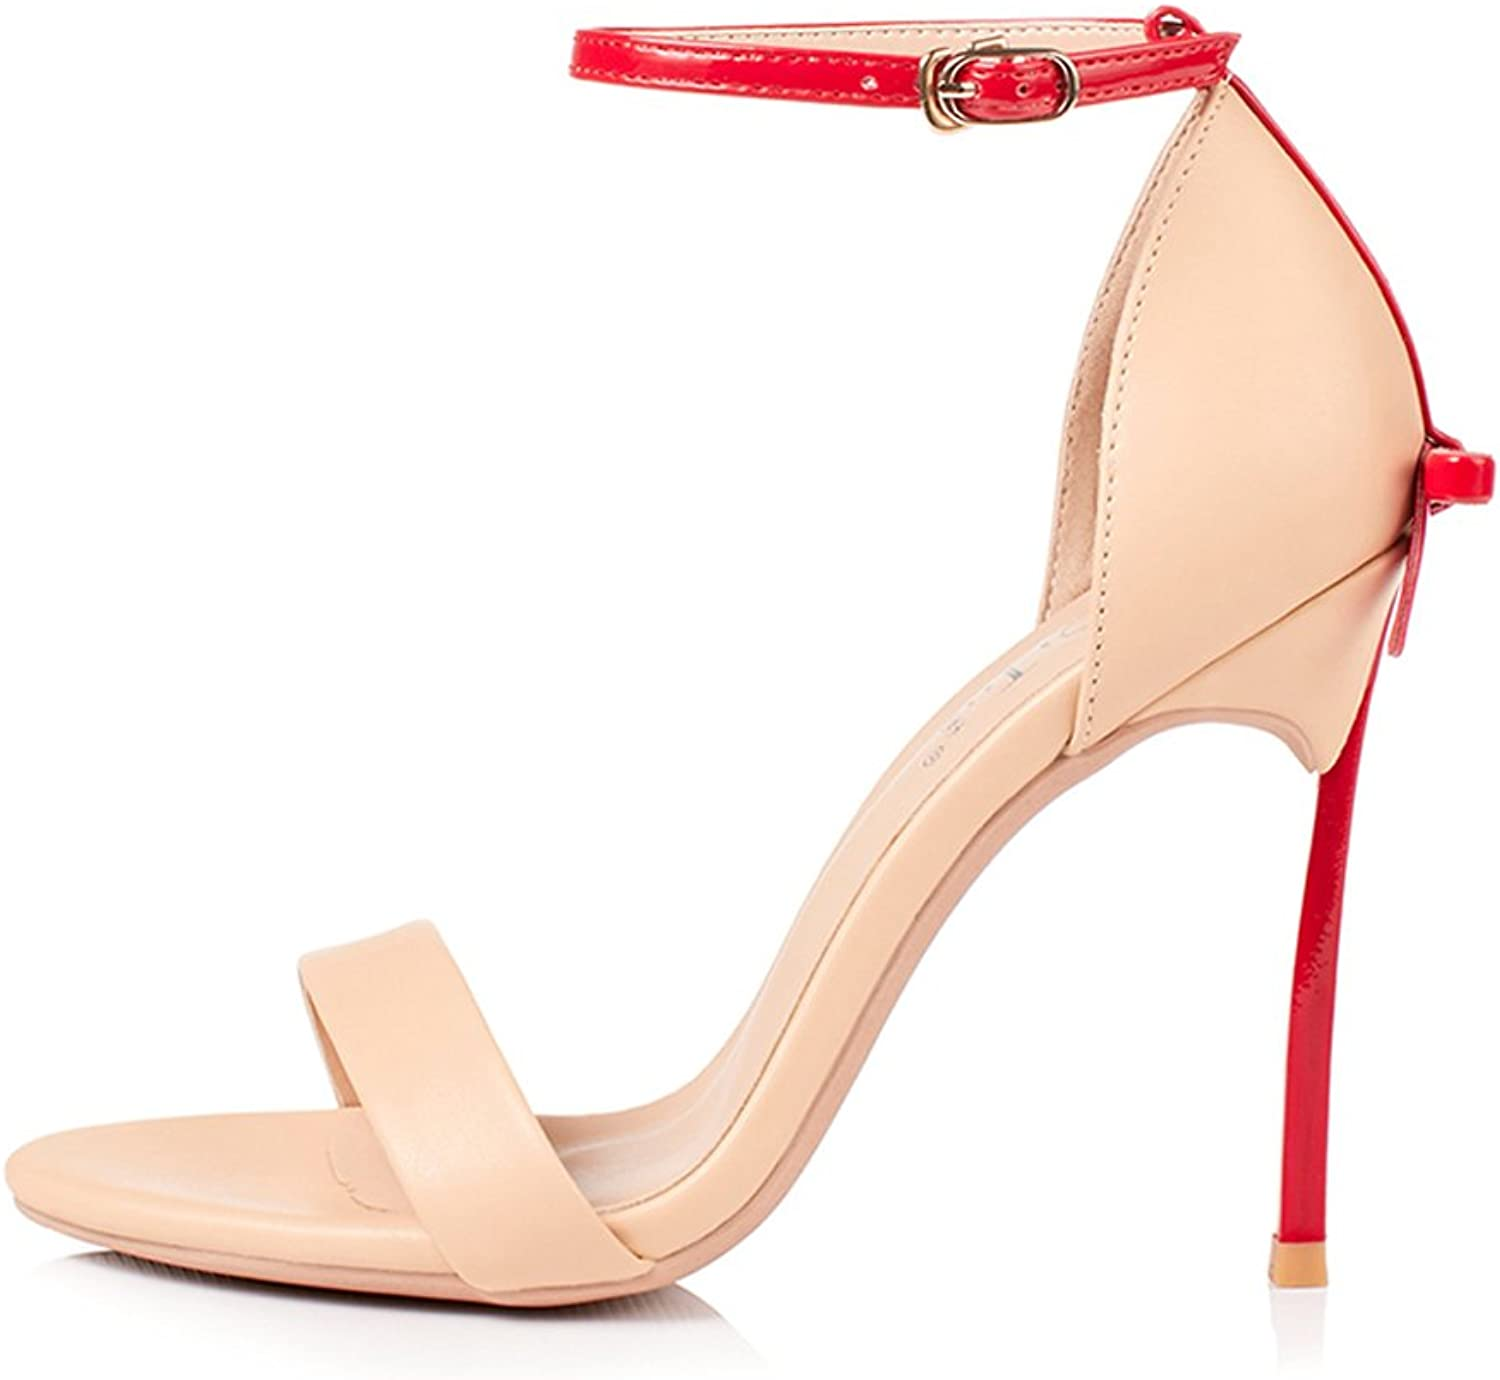 JE shoes Female Sandals Bow Thin High-Heeled Ribbon 10cm